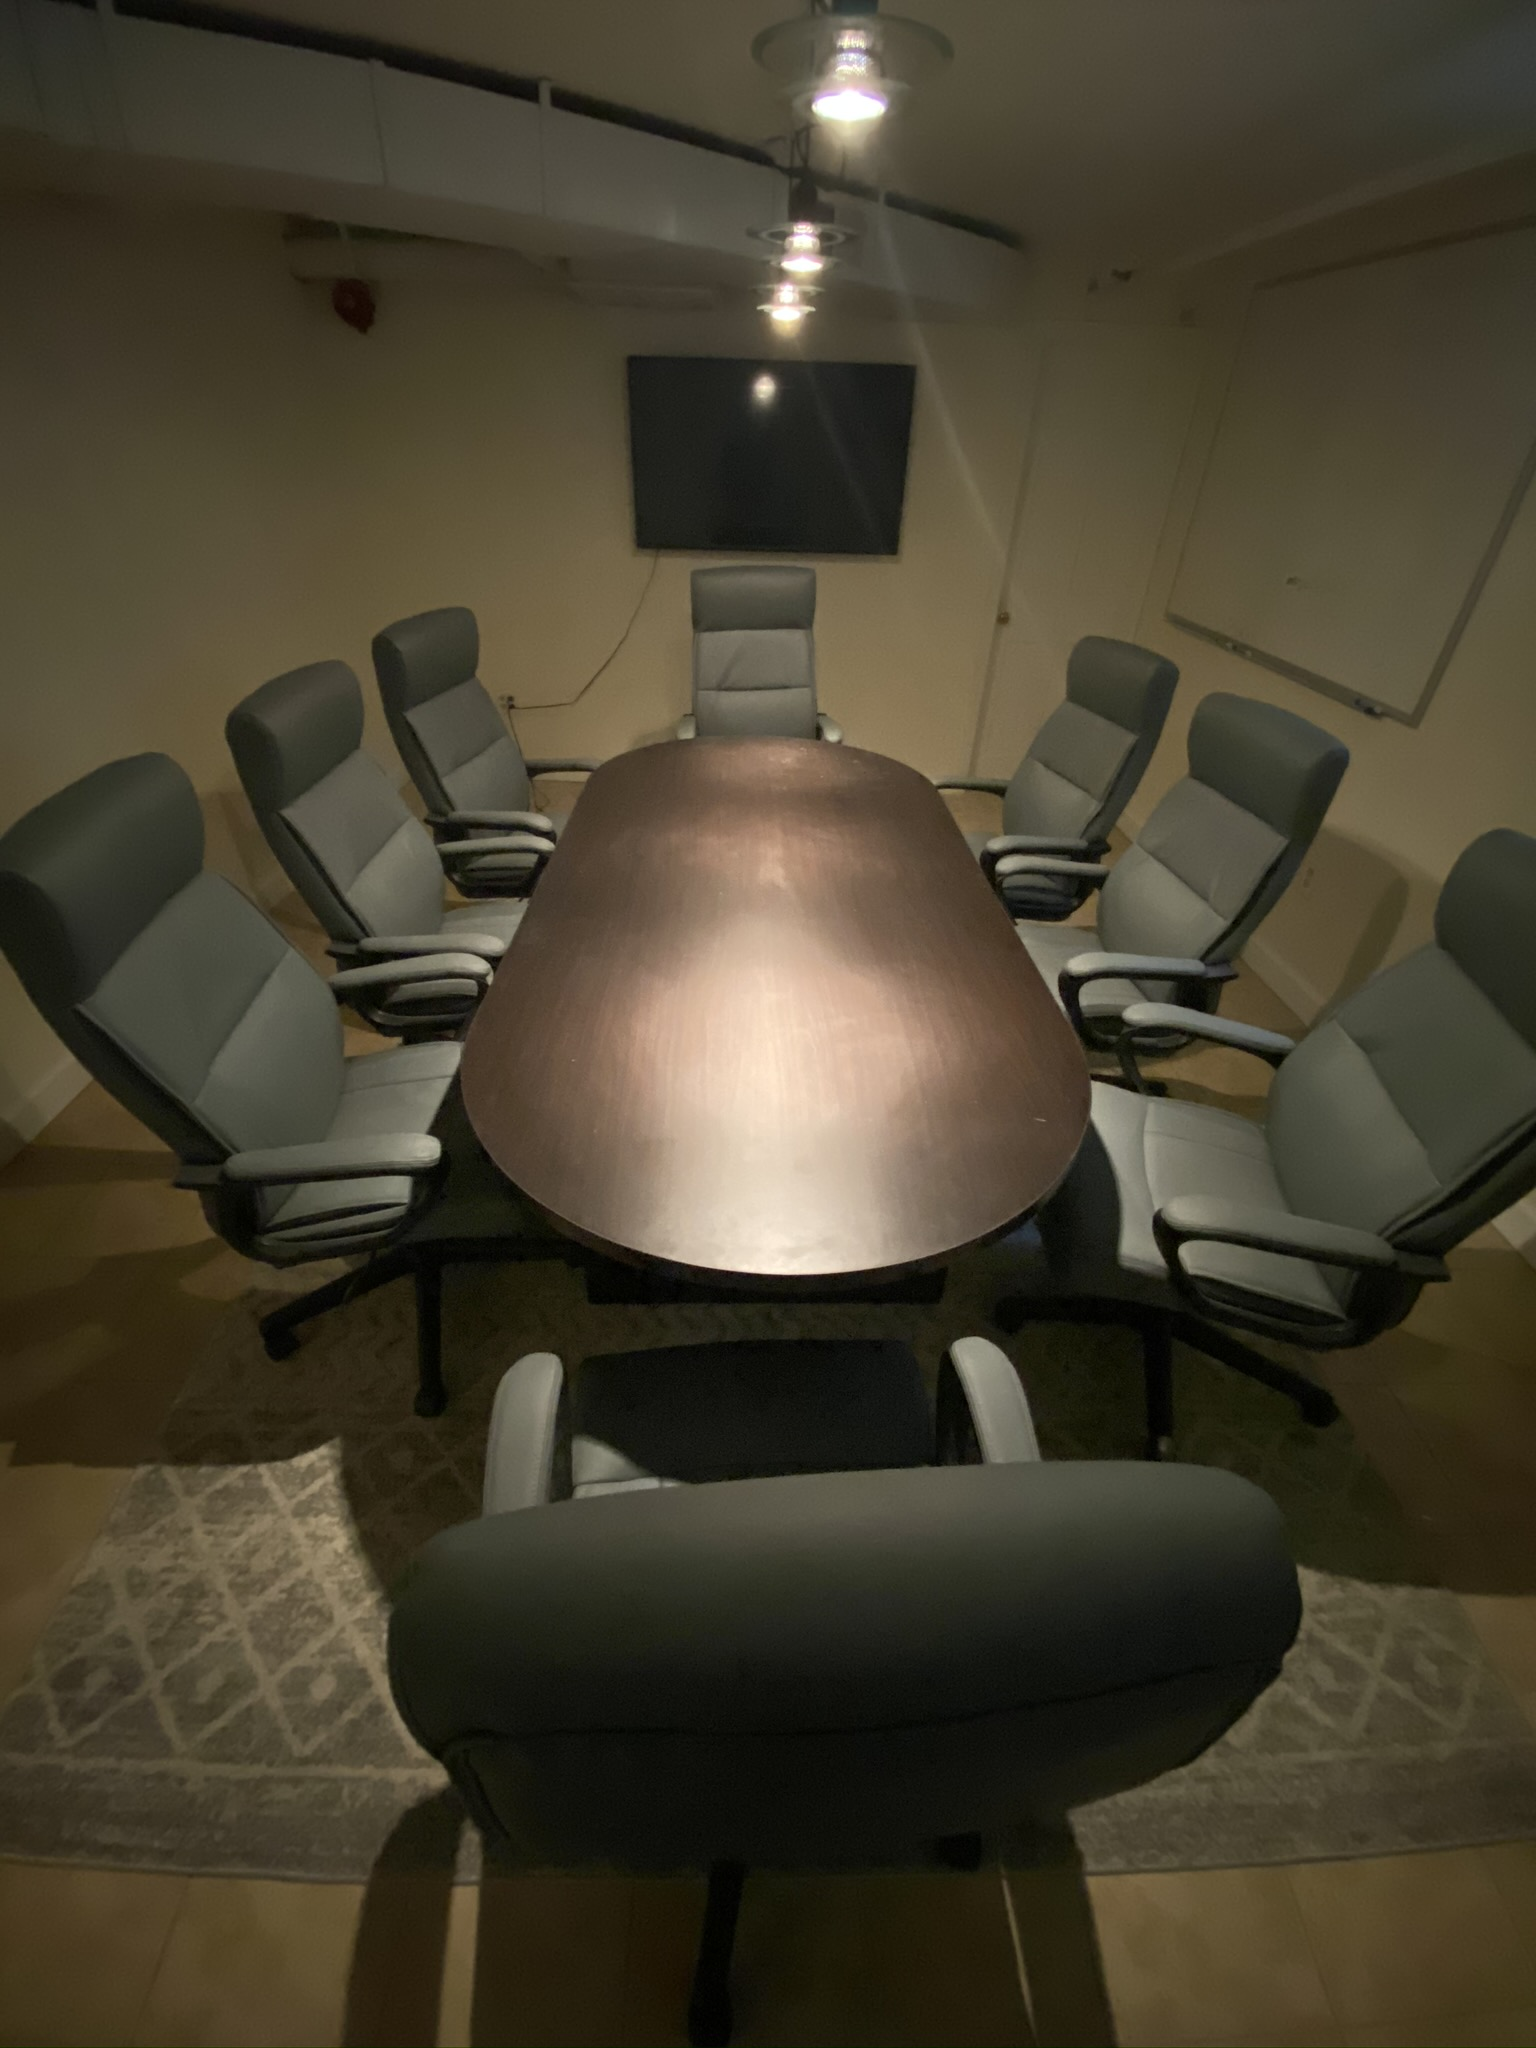 Fourte International Real Estate's Conference Room in Verona, New Jersey where real estate closings, settlements and depositions take place